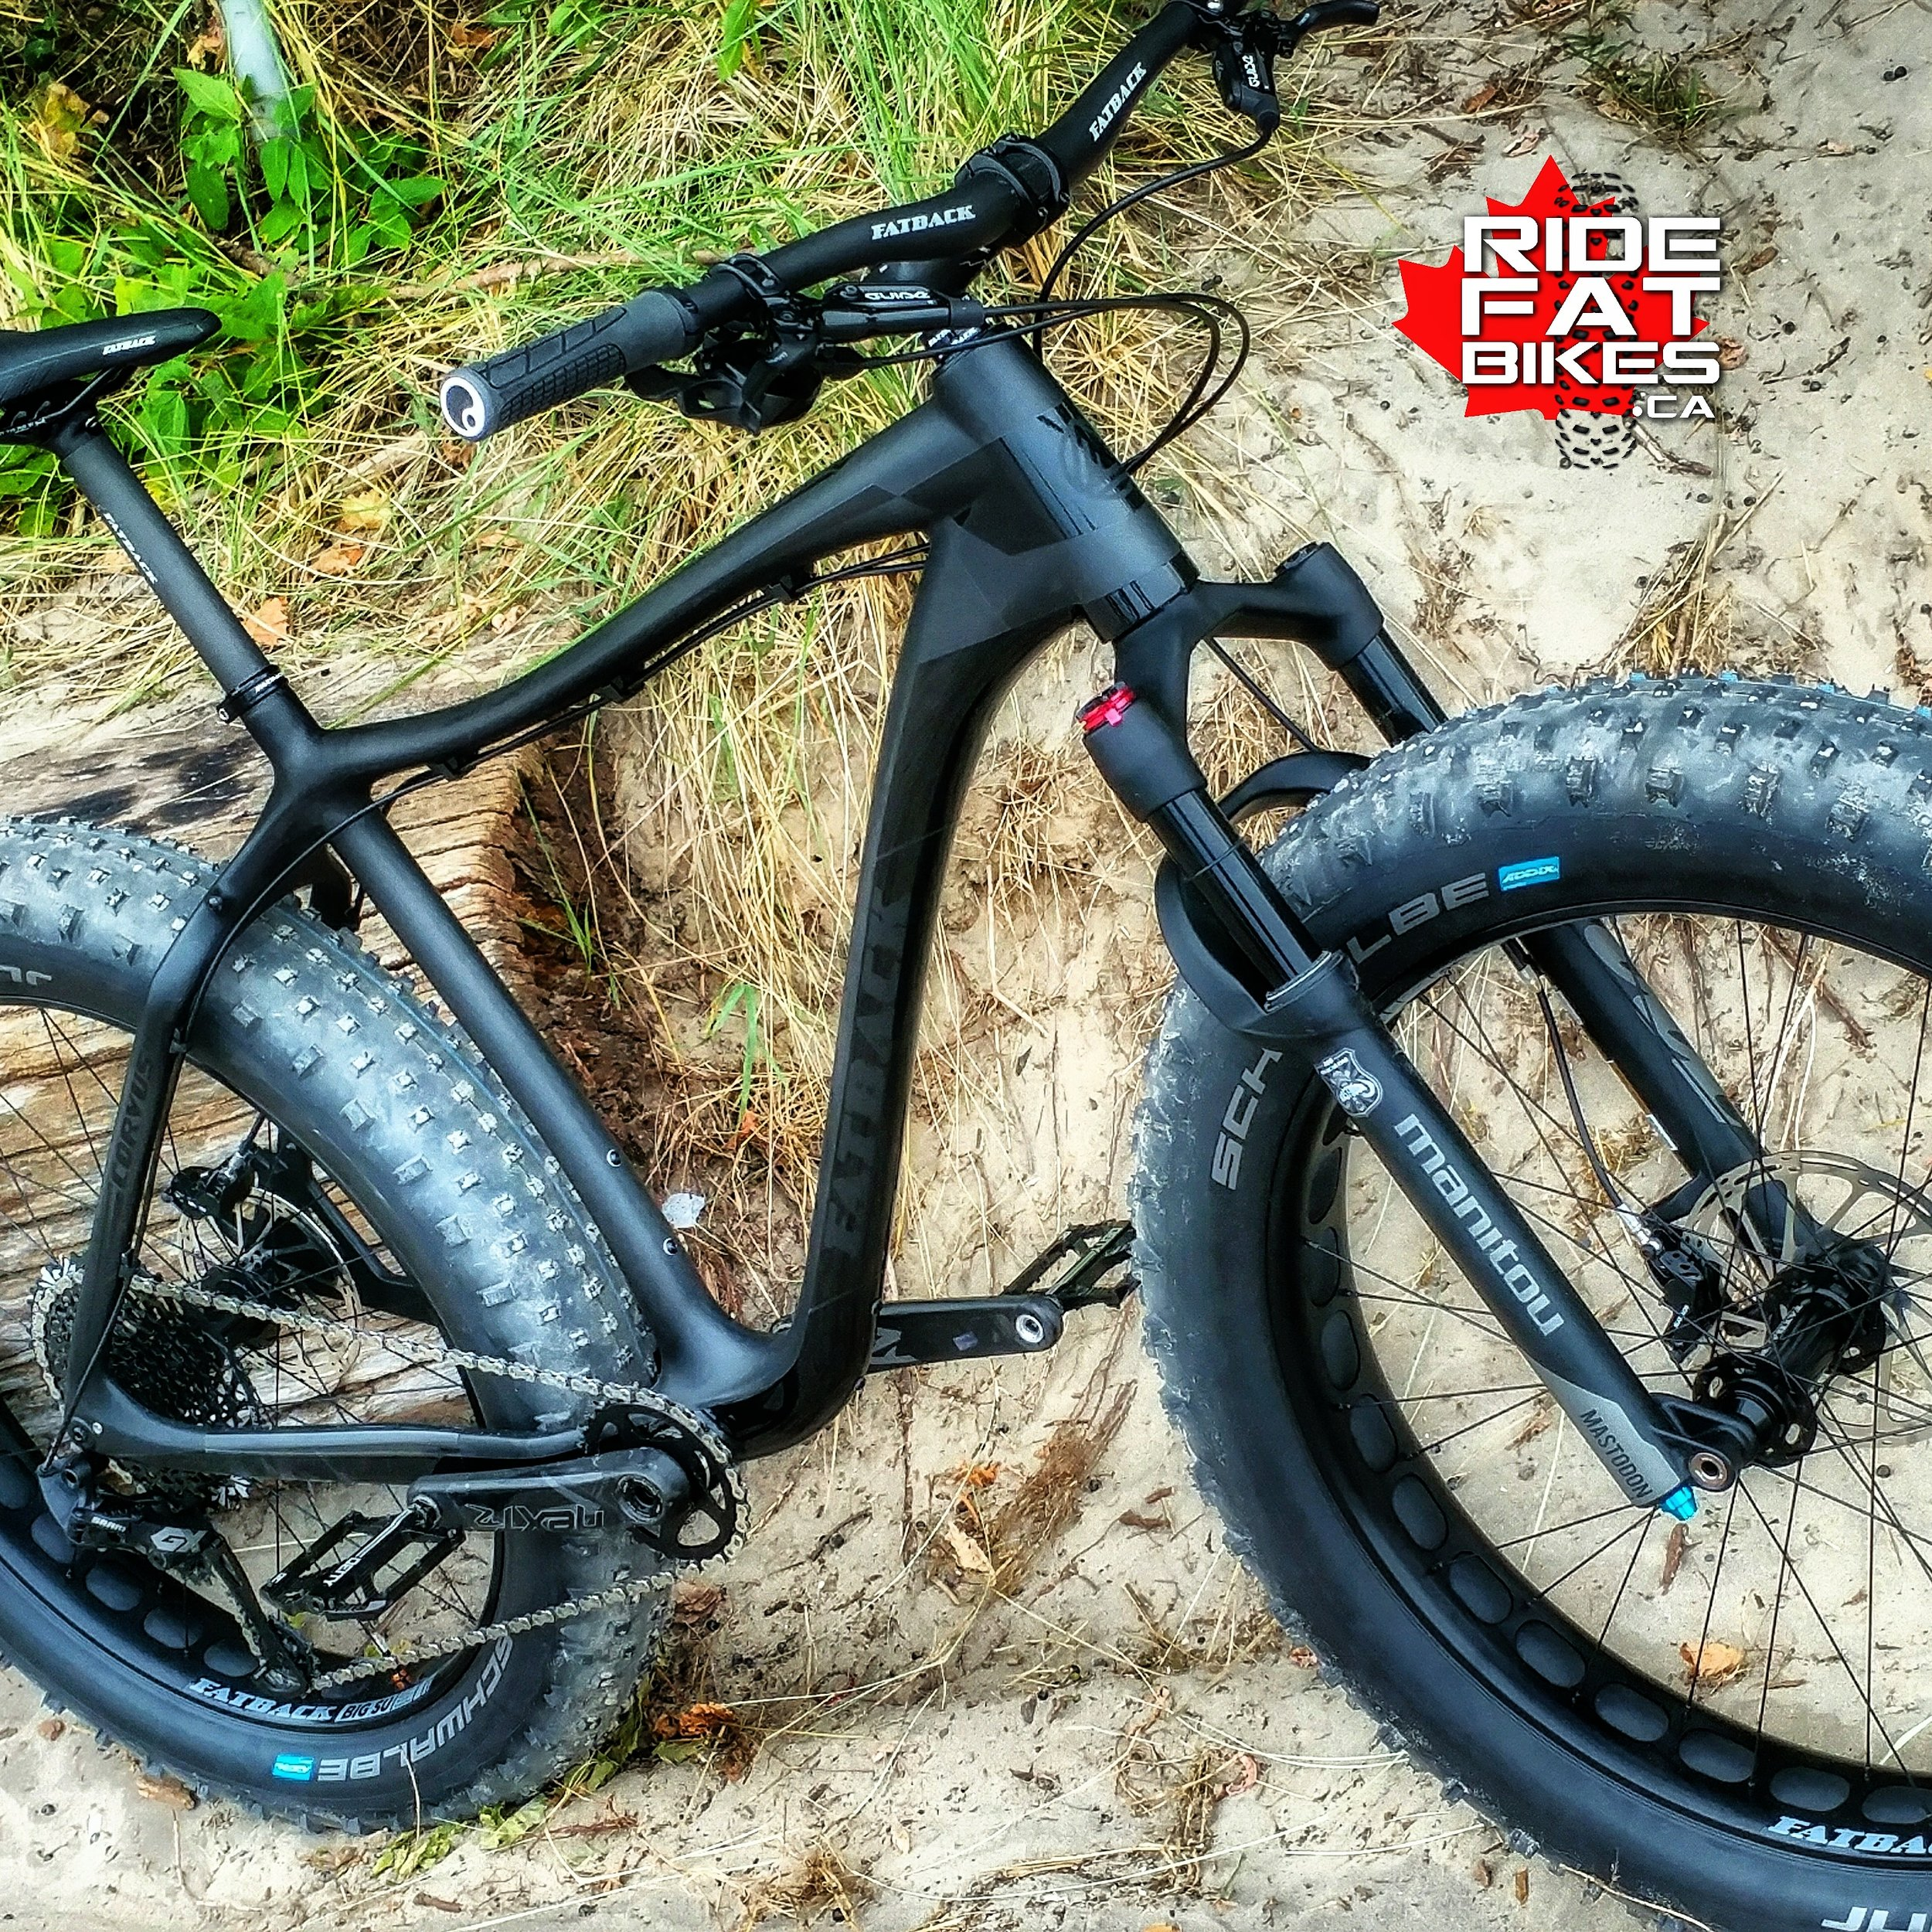 """CORVUS FLT XL-22"""" - GX EAGLE - MASTODON PRO SUSPENSION - BIG SU WHEELSET - RACEFACE NEXTR CARBON CRANKSET - DEITY BLADERUNNER PEDALS - 29 lbs as pictured (27 lbs w/o pedals and sealant)"""